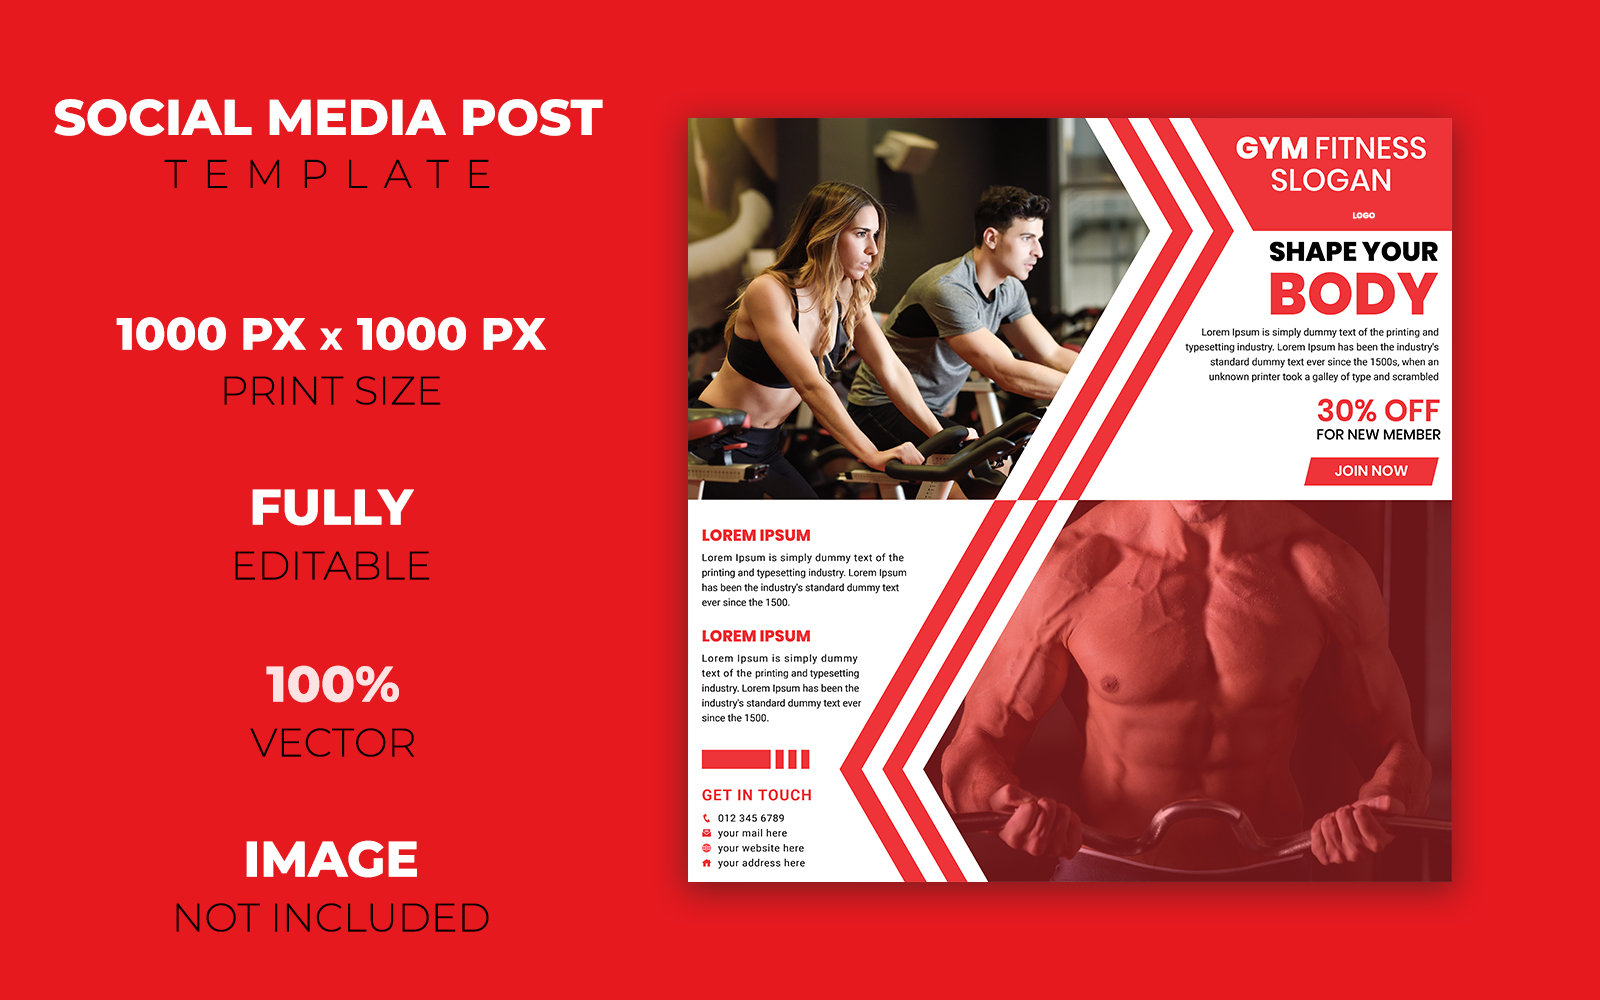 Gym Fitness Social Media Post Design Corporate Identity Template